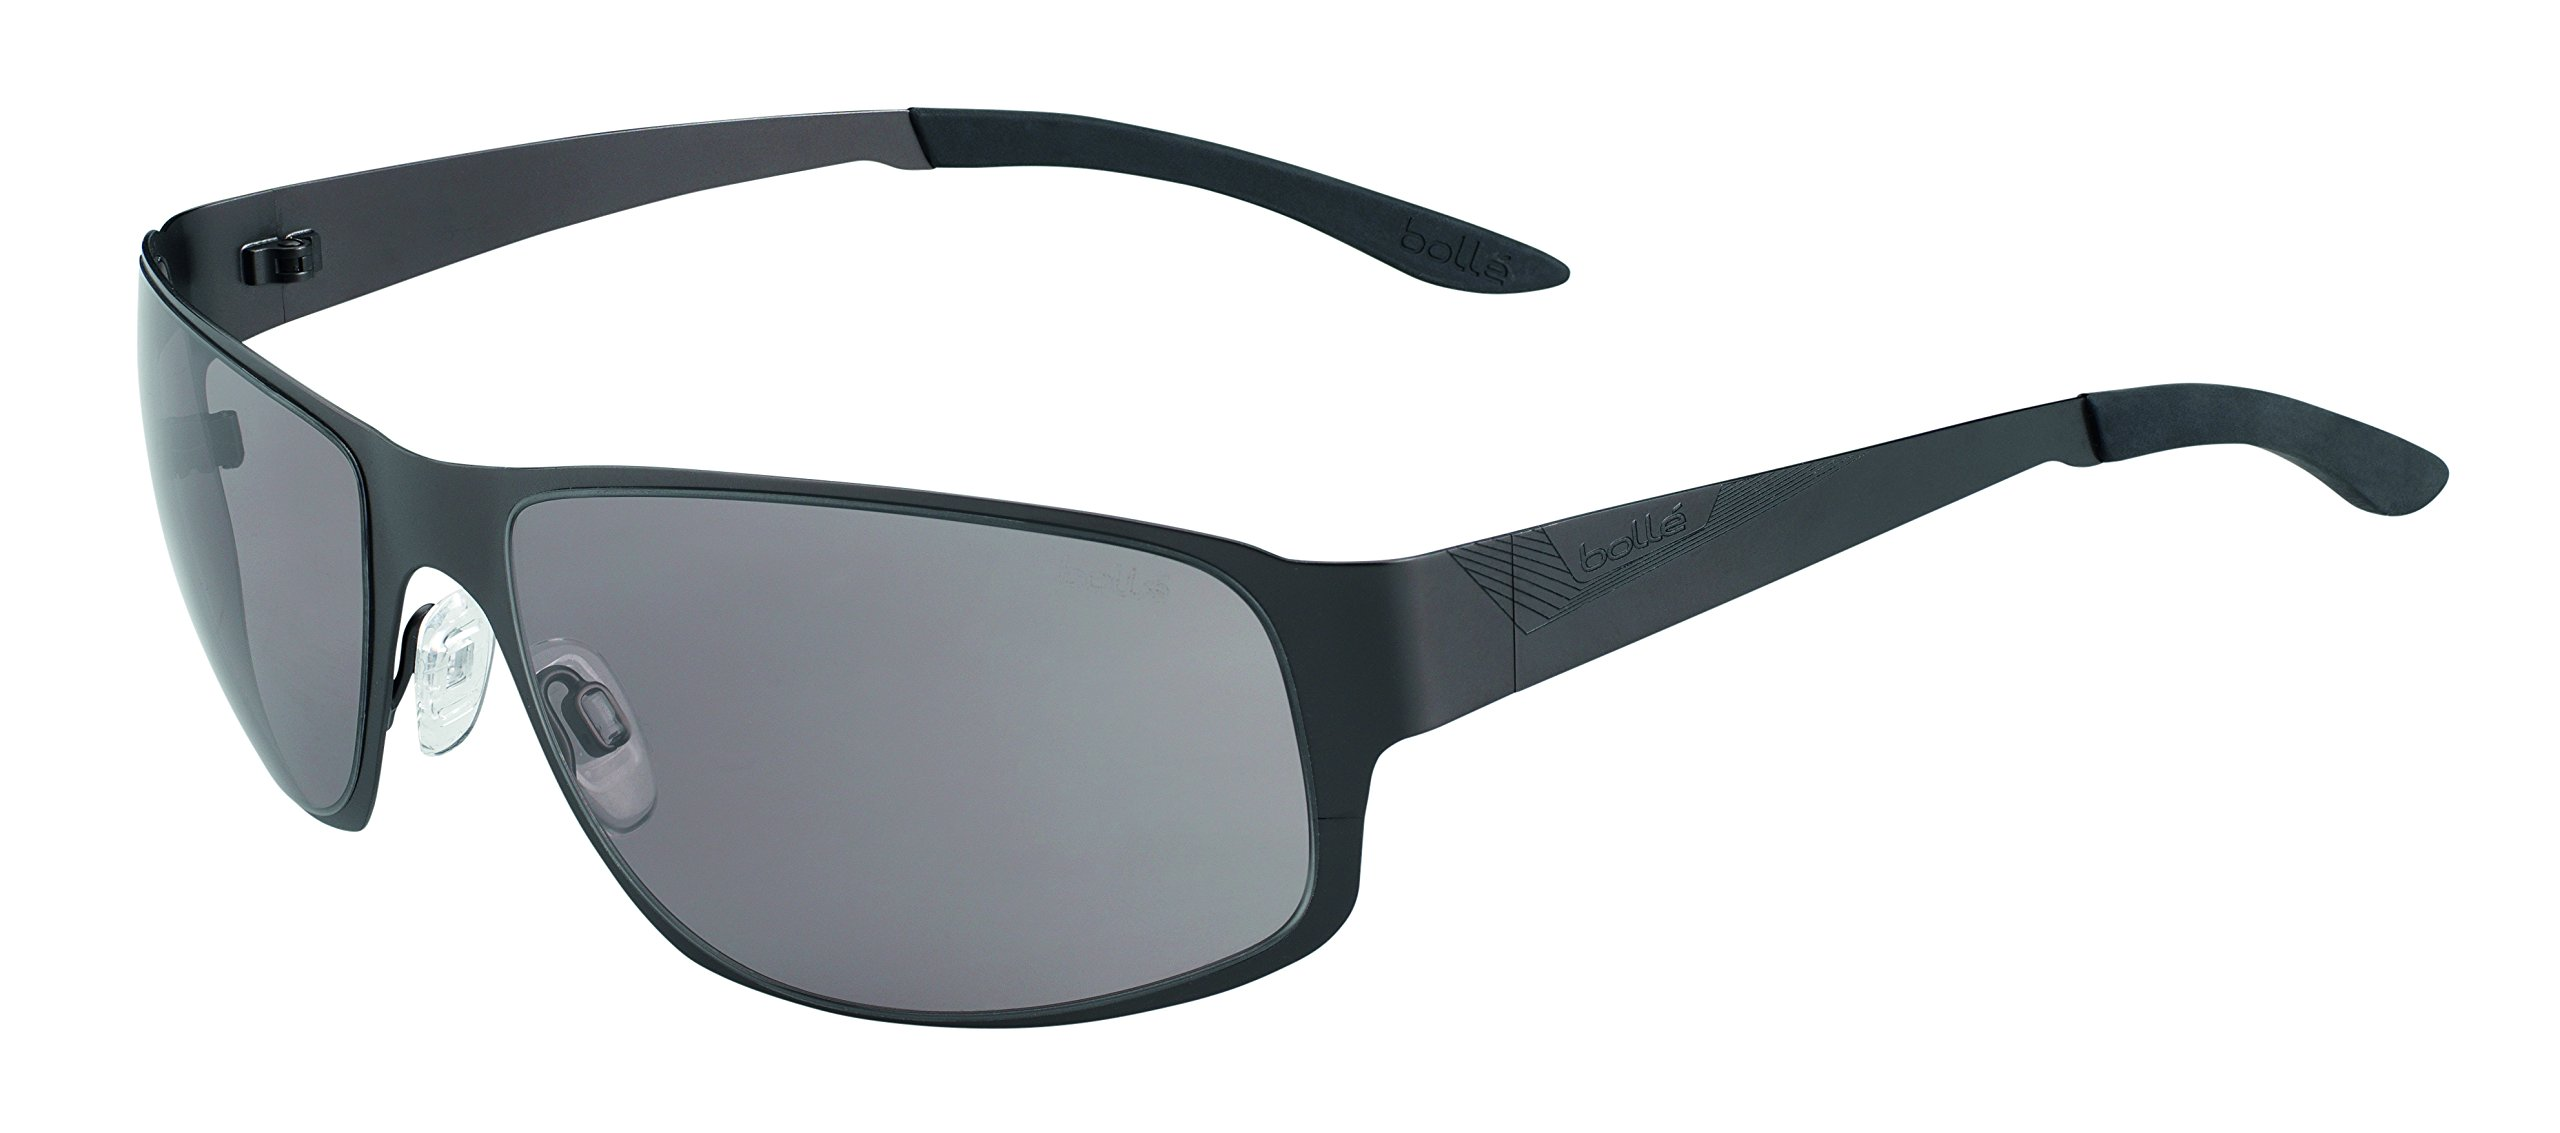 Bolle Auckland Sunglasses Matte Gun, Smoke by Bolle